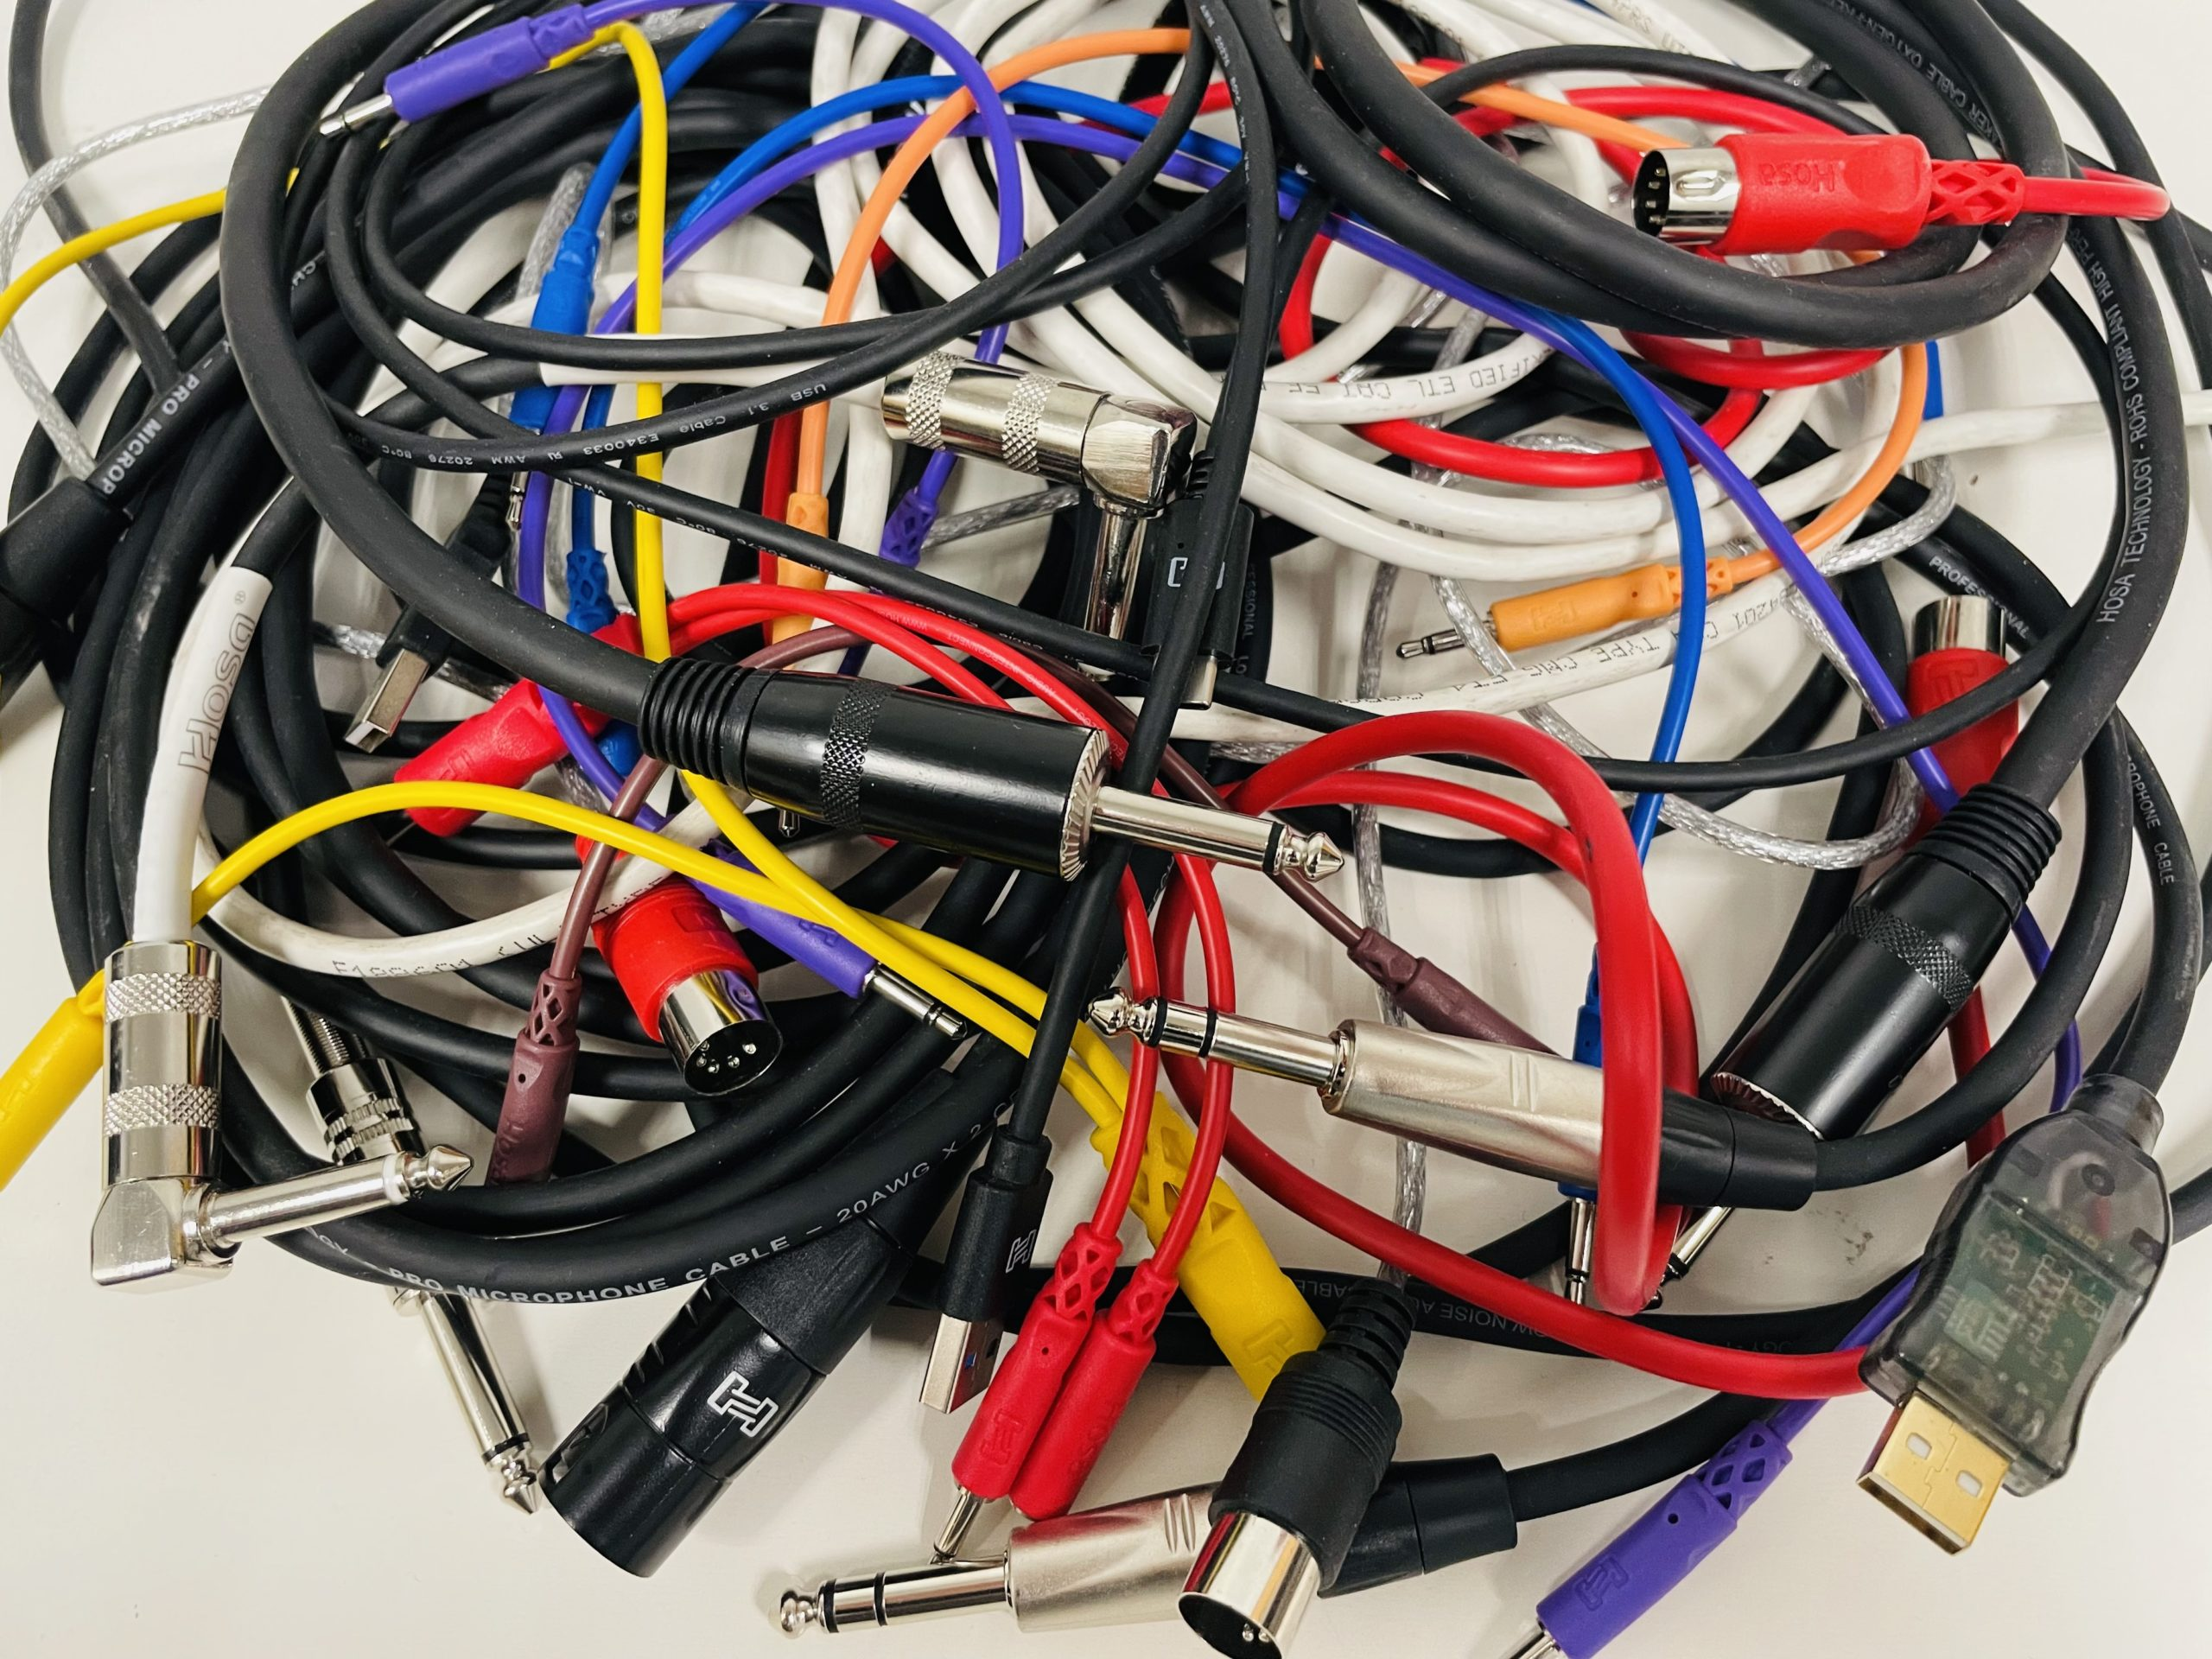 Cables by Hosa